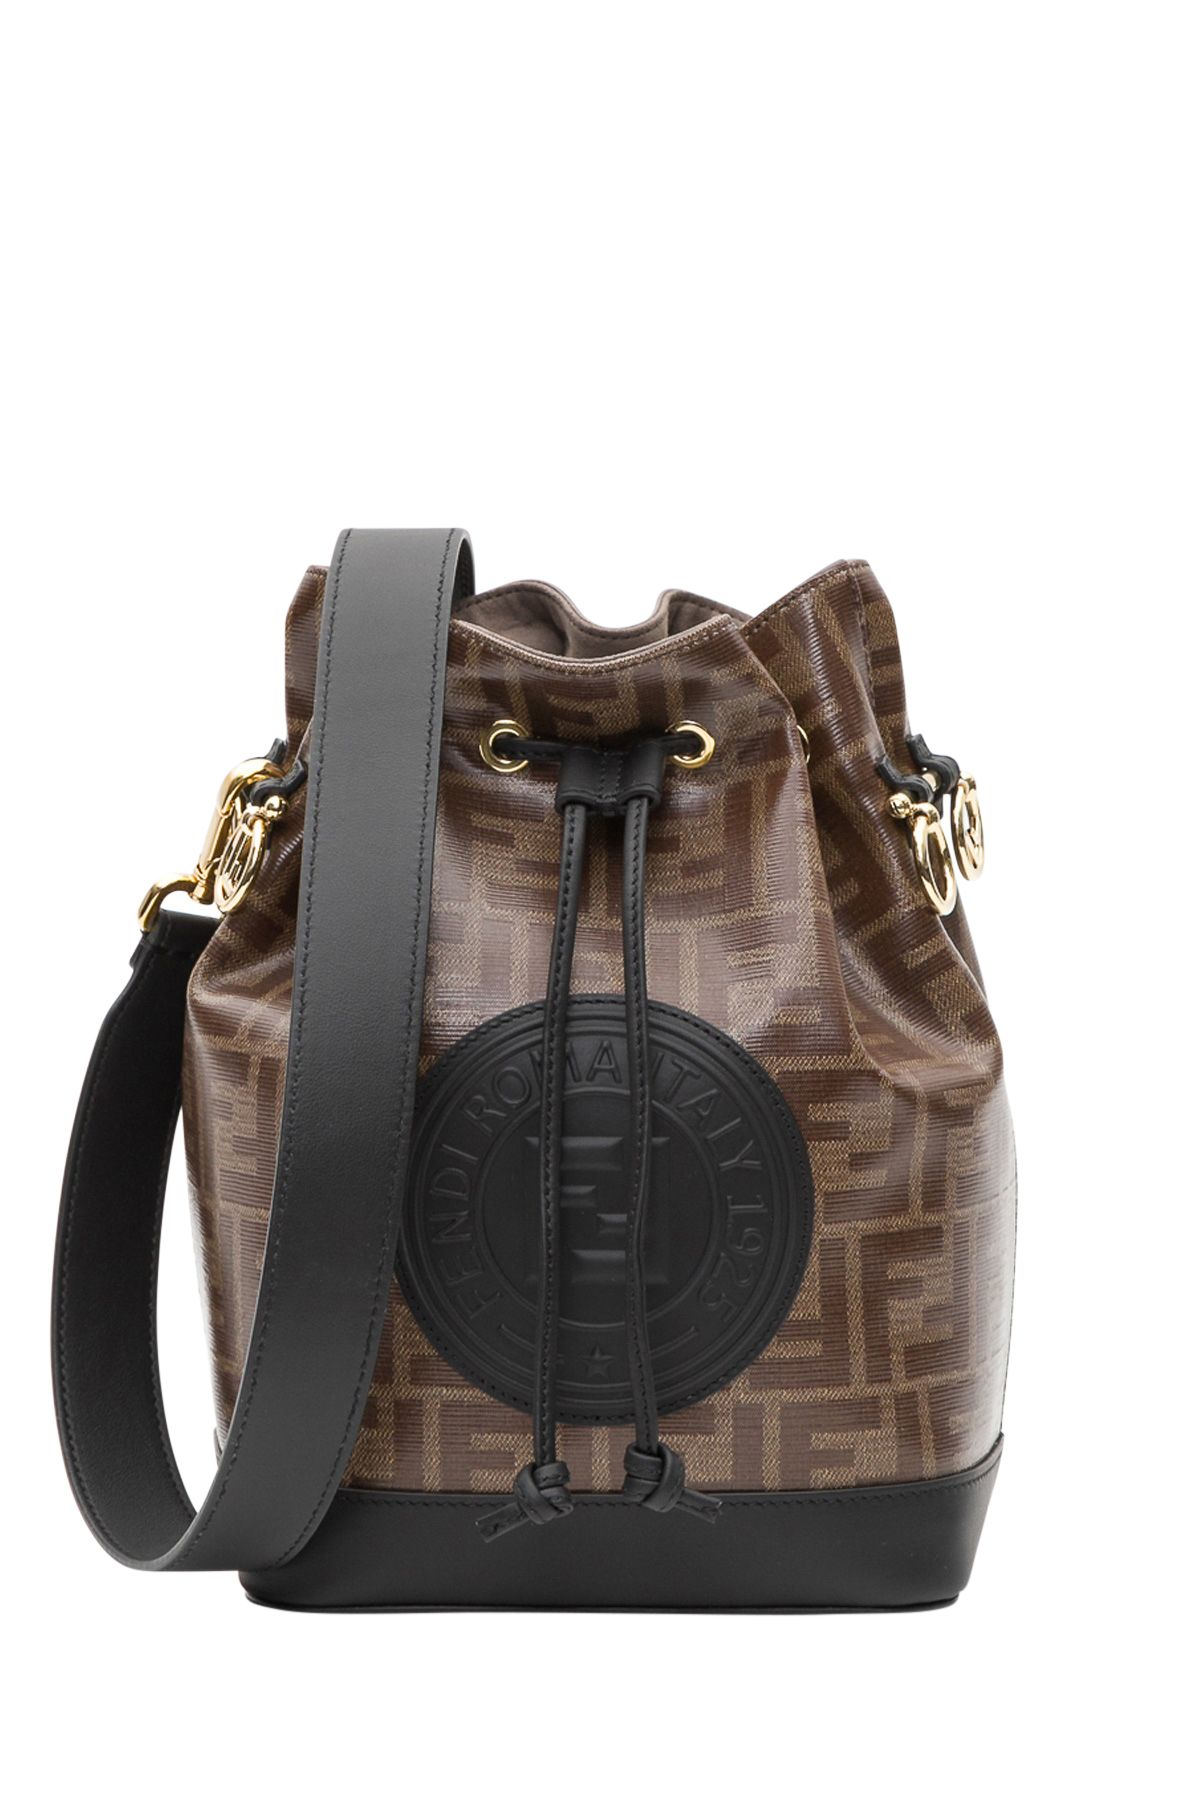 cd759f67faca Fendi Fendi Mon Tresor Bucket Bag - Marrone - 10804291